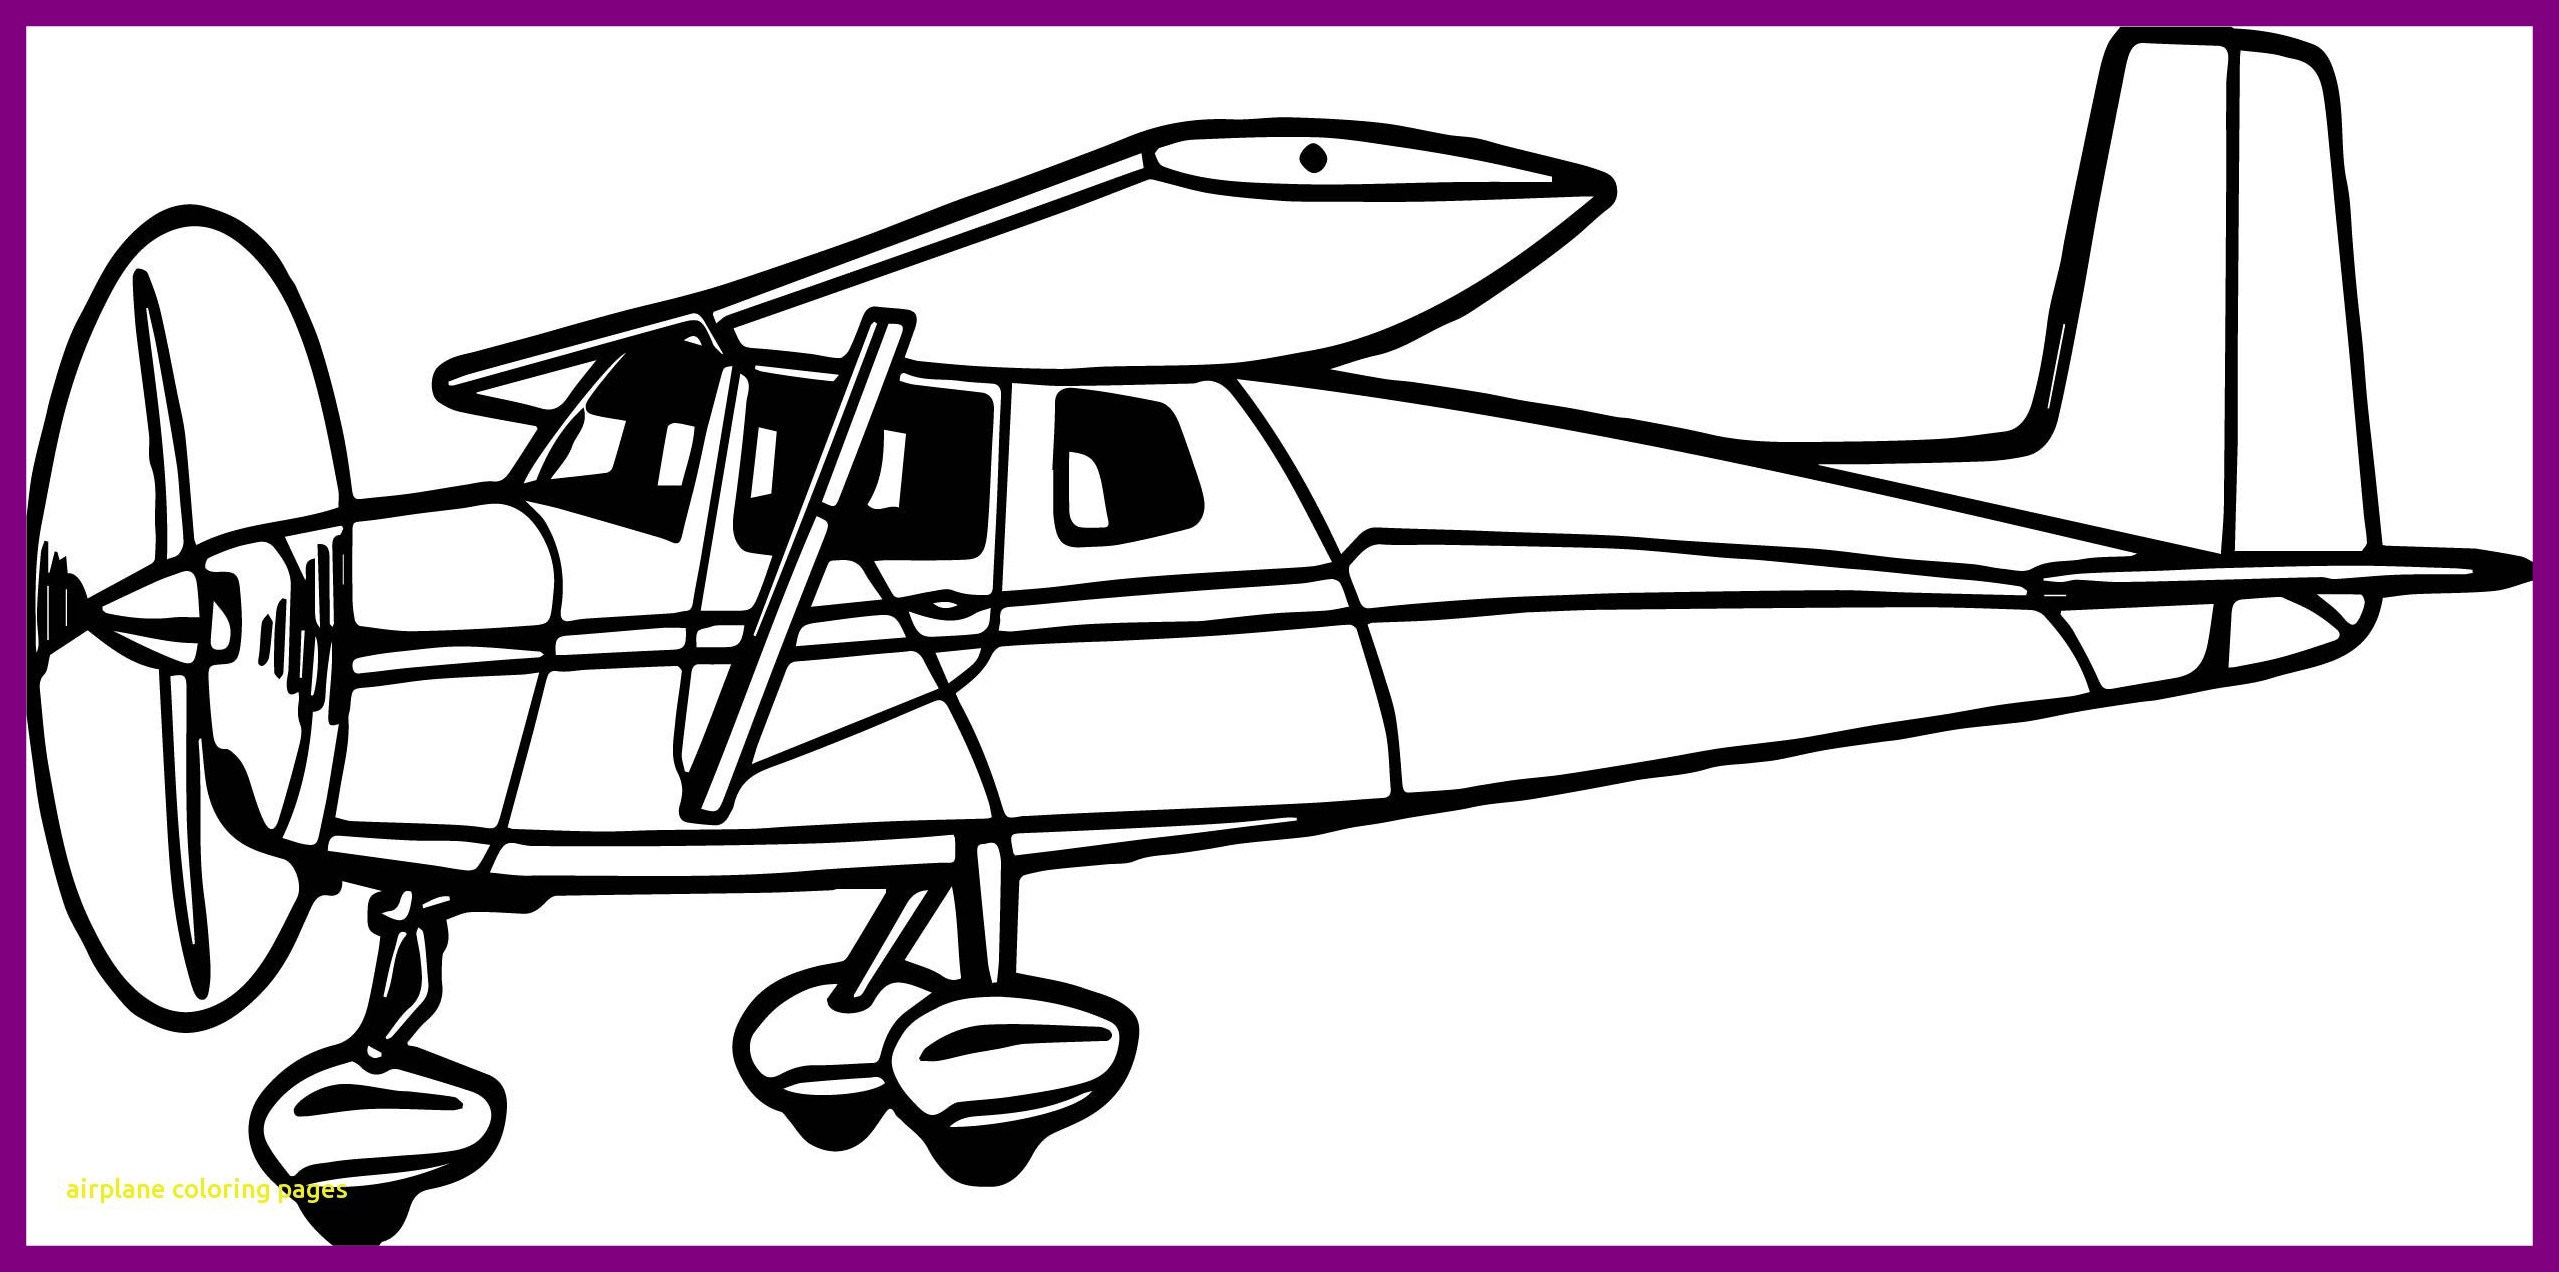 2559x1272 Inspiring Perspective Air Plane Coloring Pages With Airplanes New